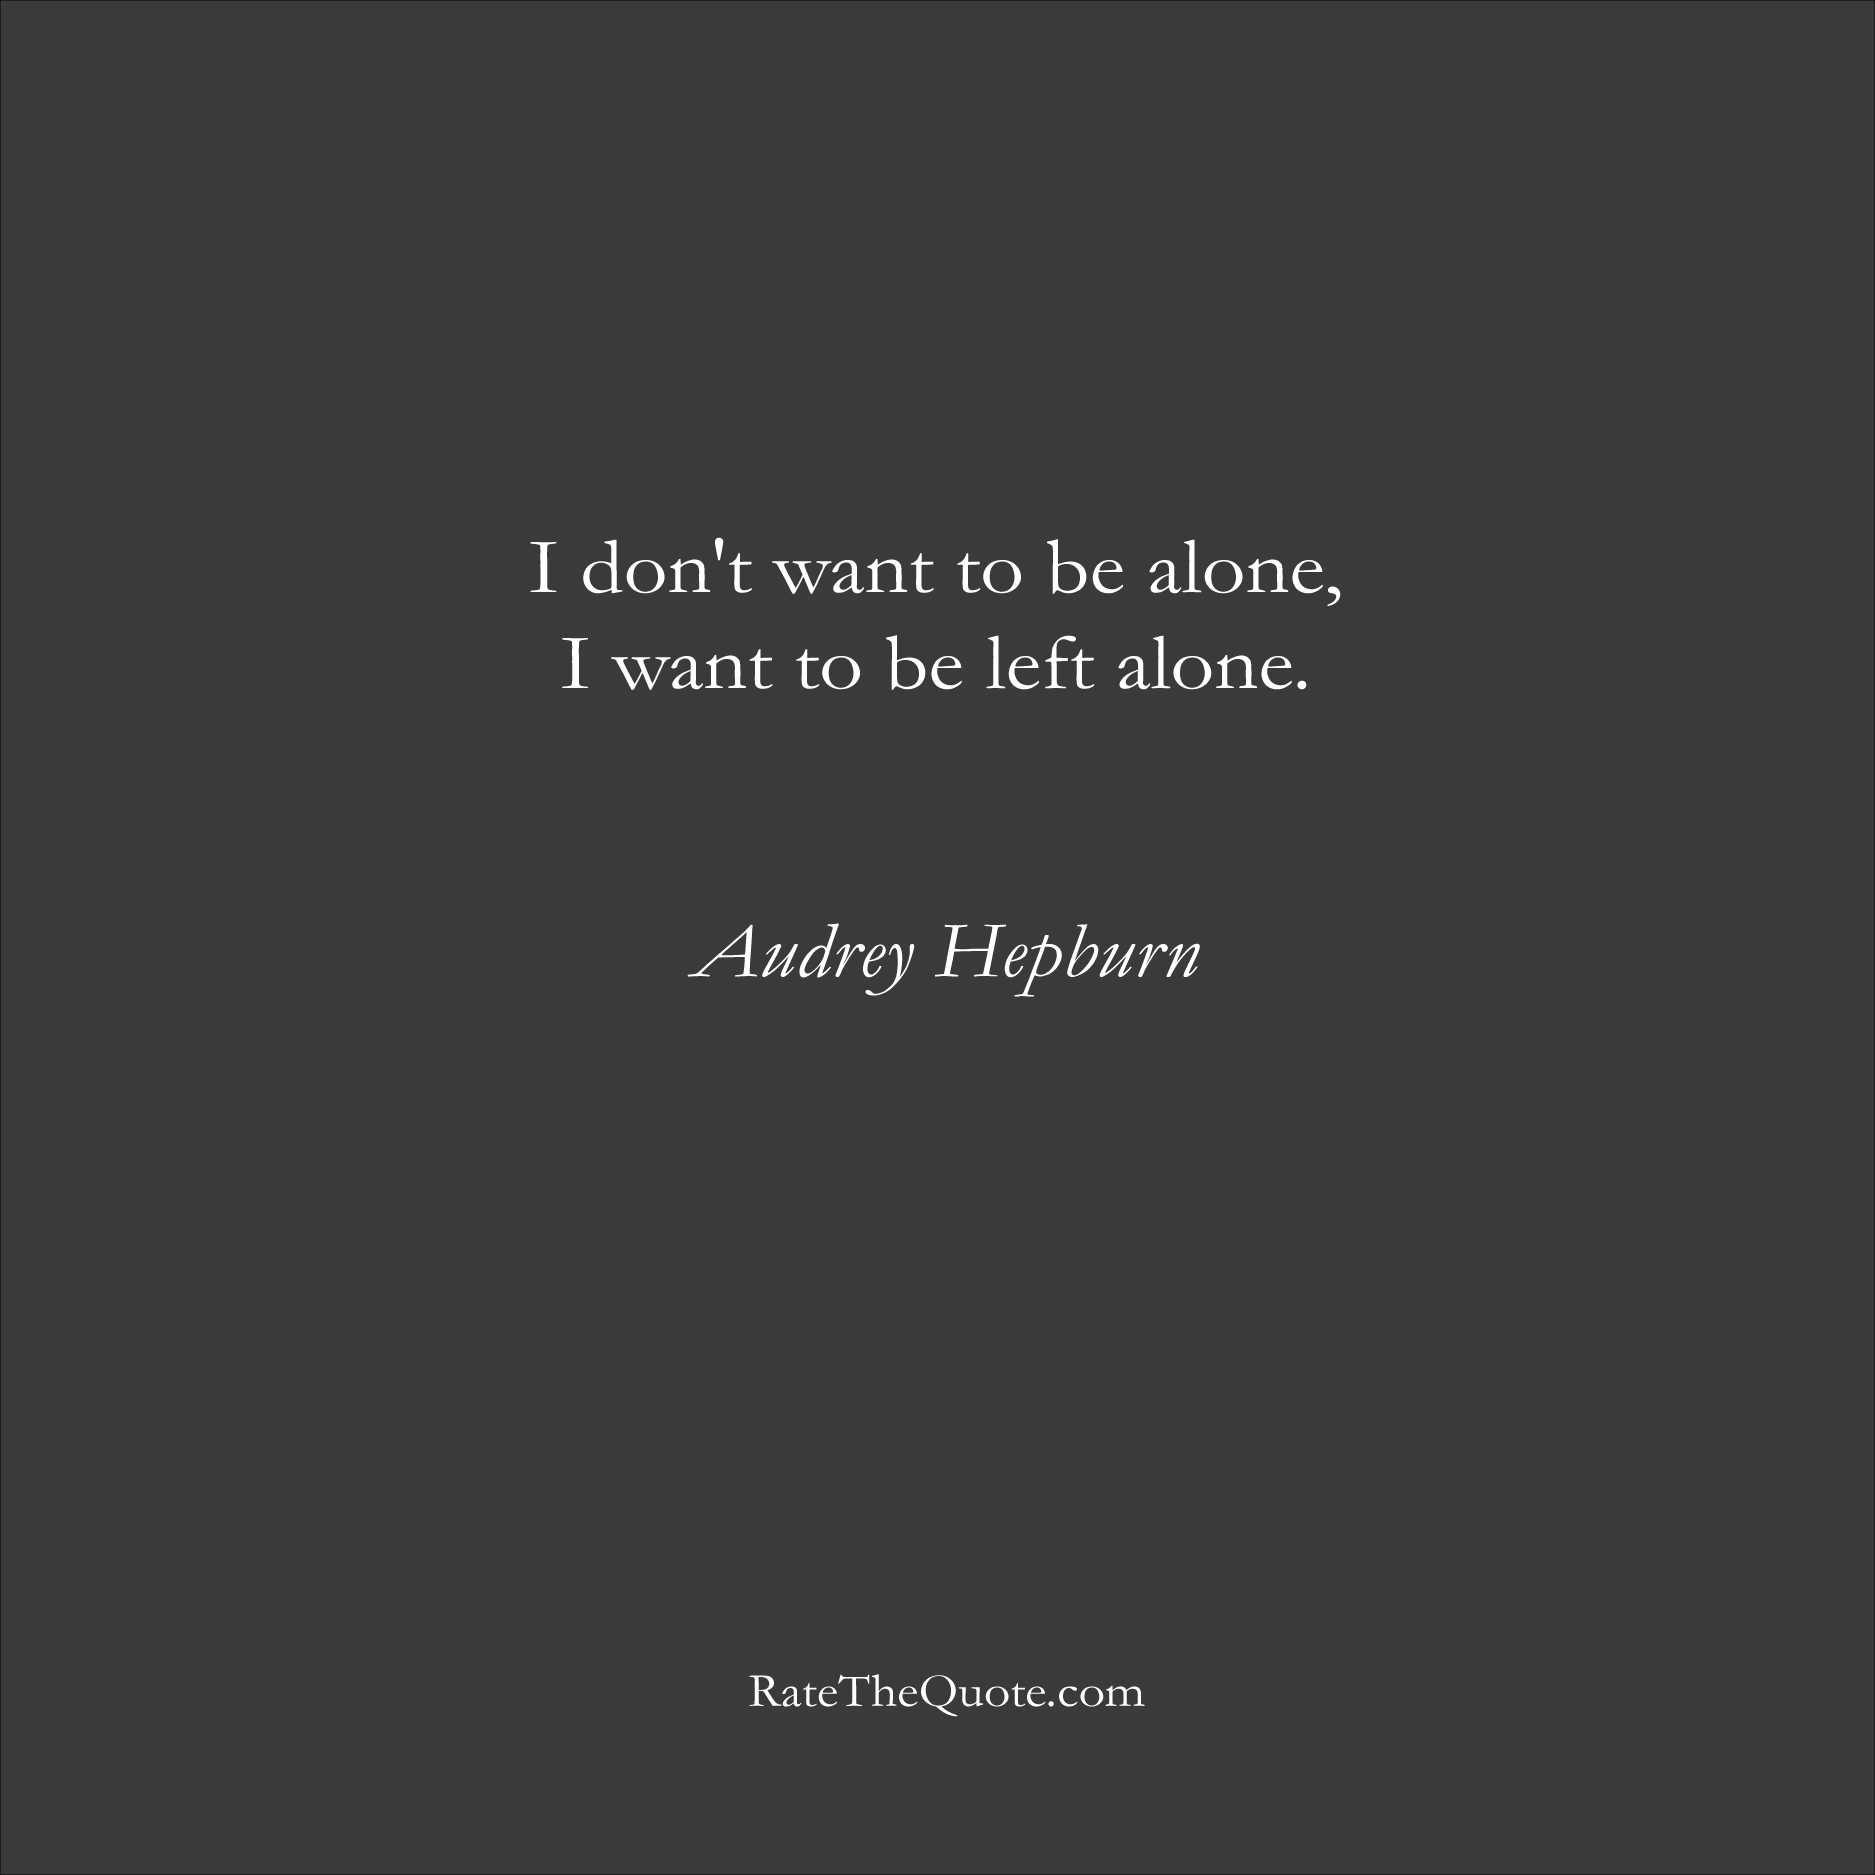 Audrey Hepburn Quotes I don't want to be alone, I want to be left alone. Audrey Hepburn